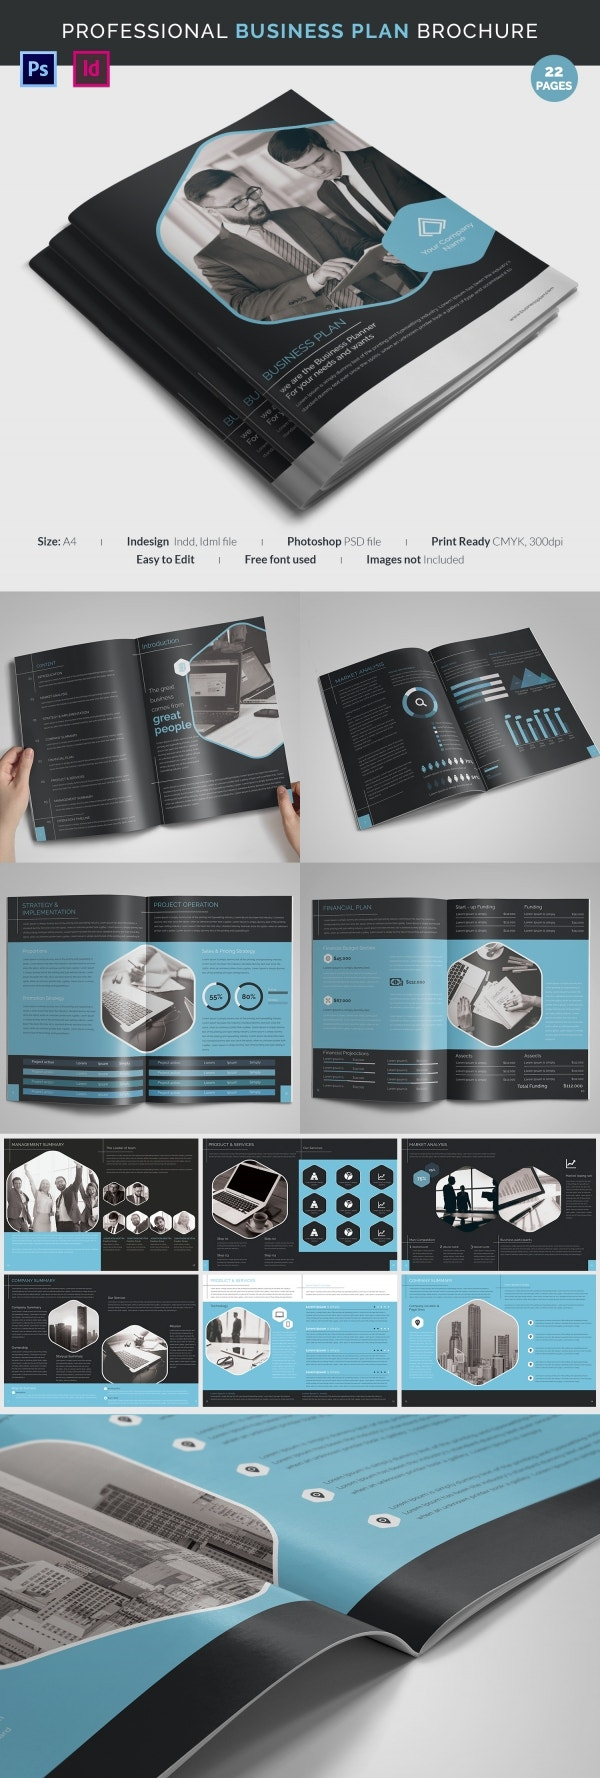 ProfessionalBusinessPlan_Brochure